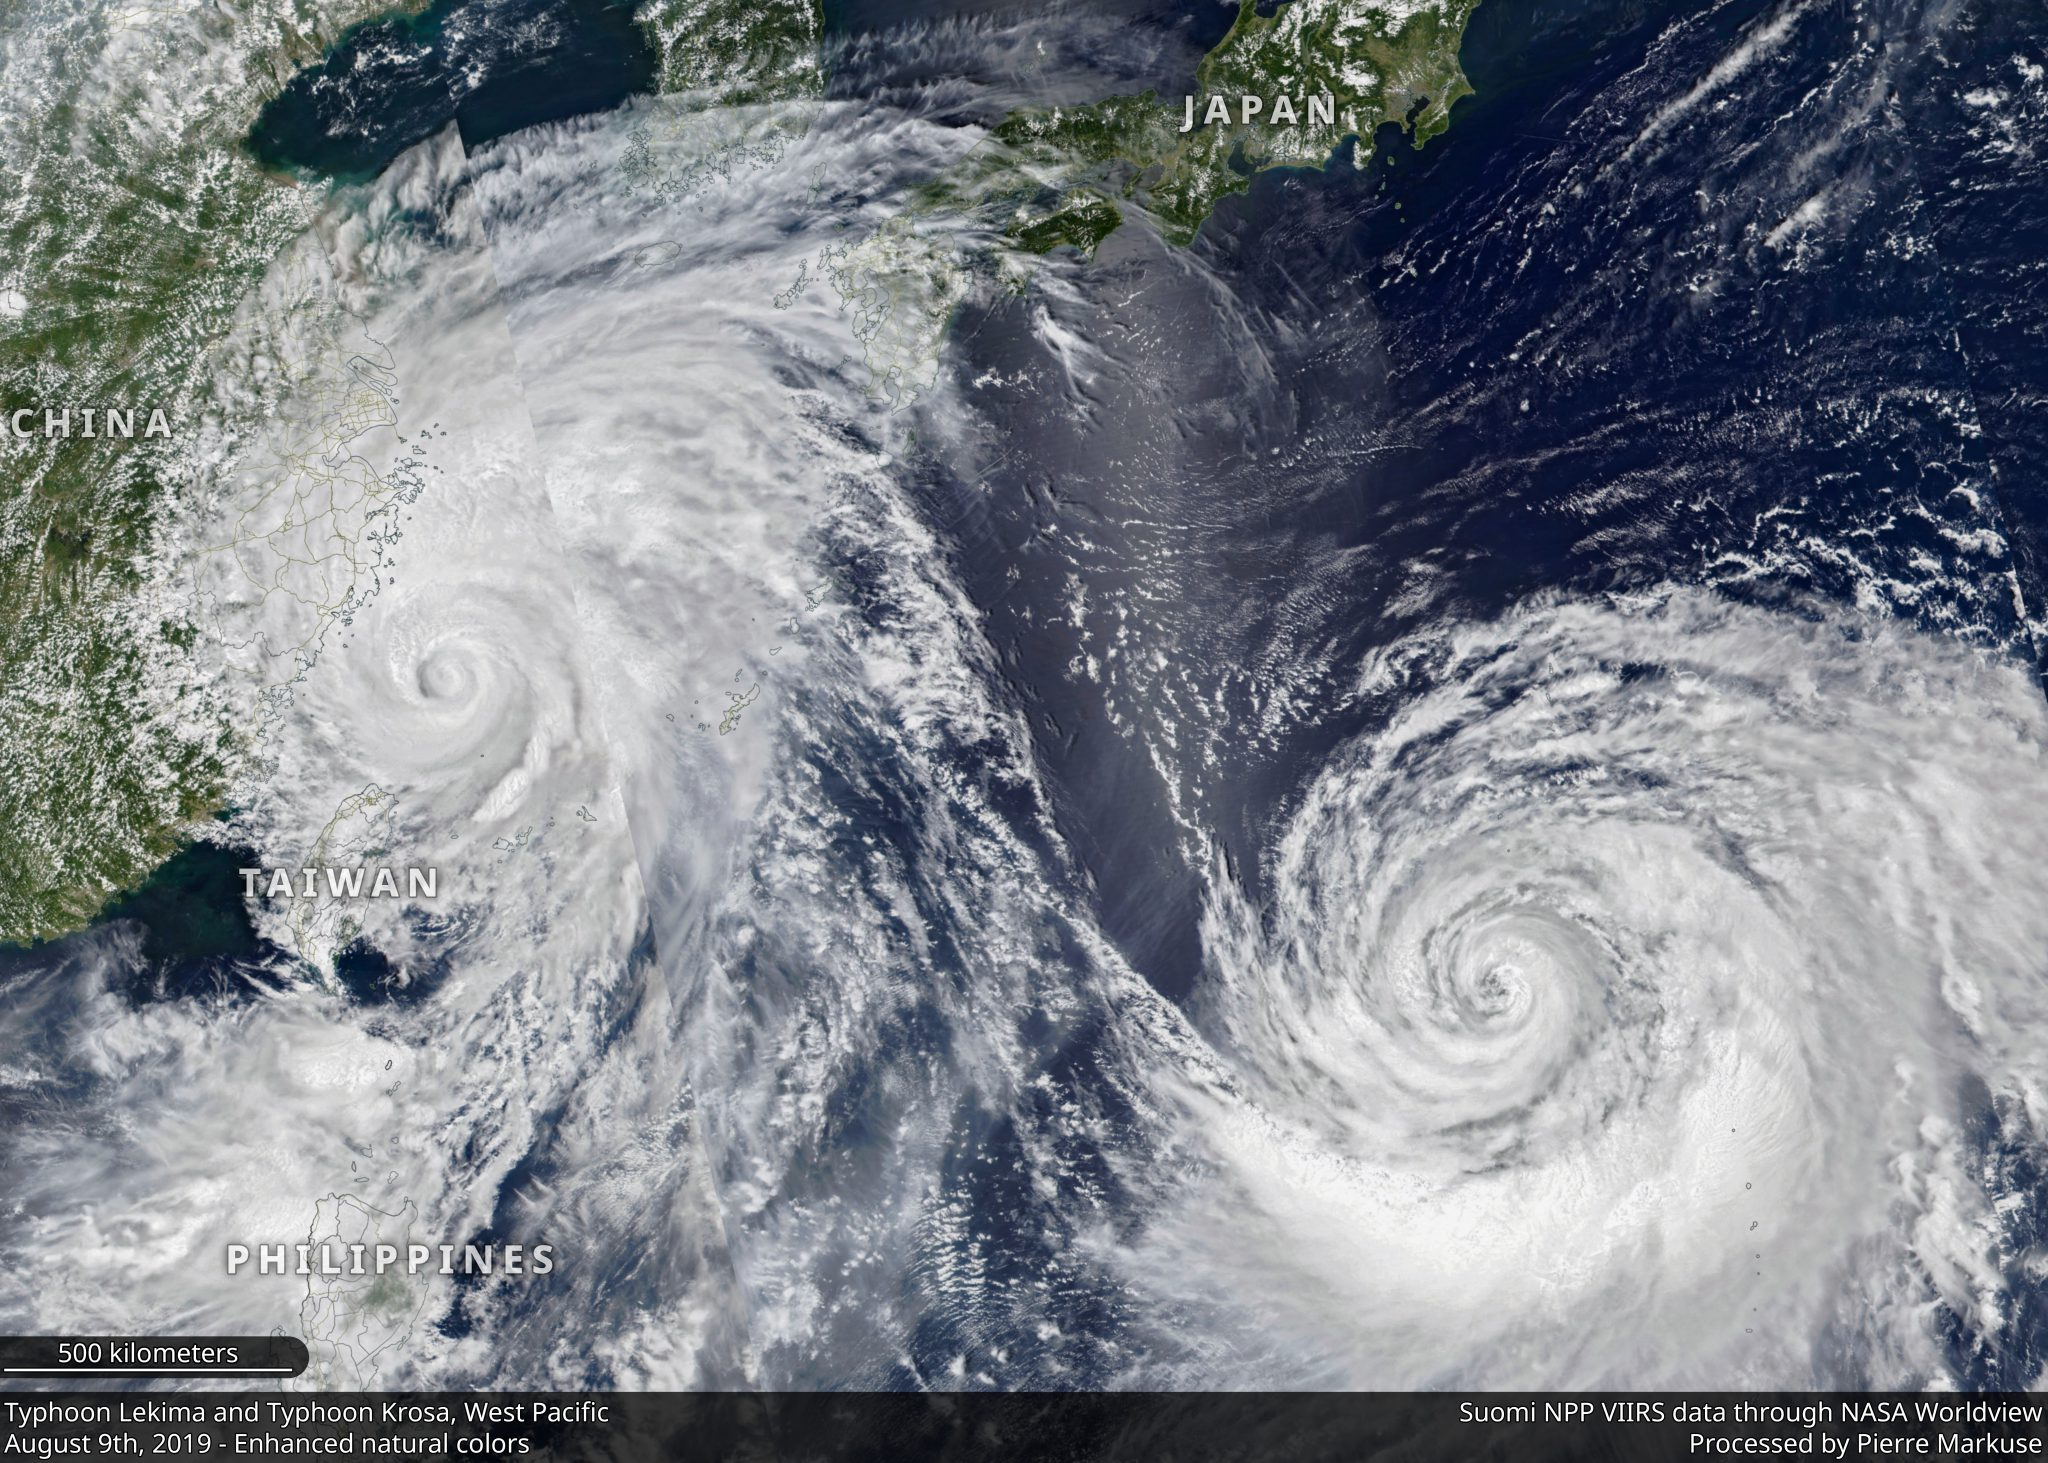 desc:Typhoon Lekima and Typhoon Krosa, West Pacific - August 9th, 2019